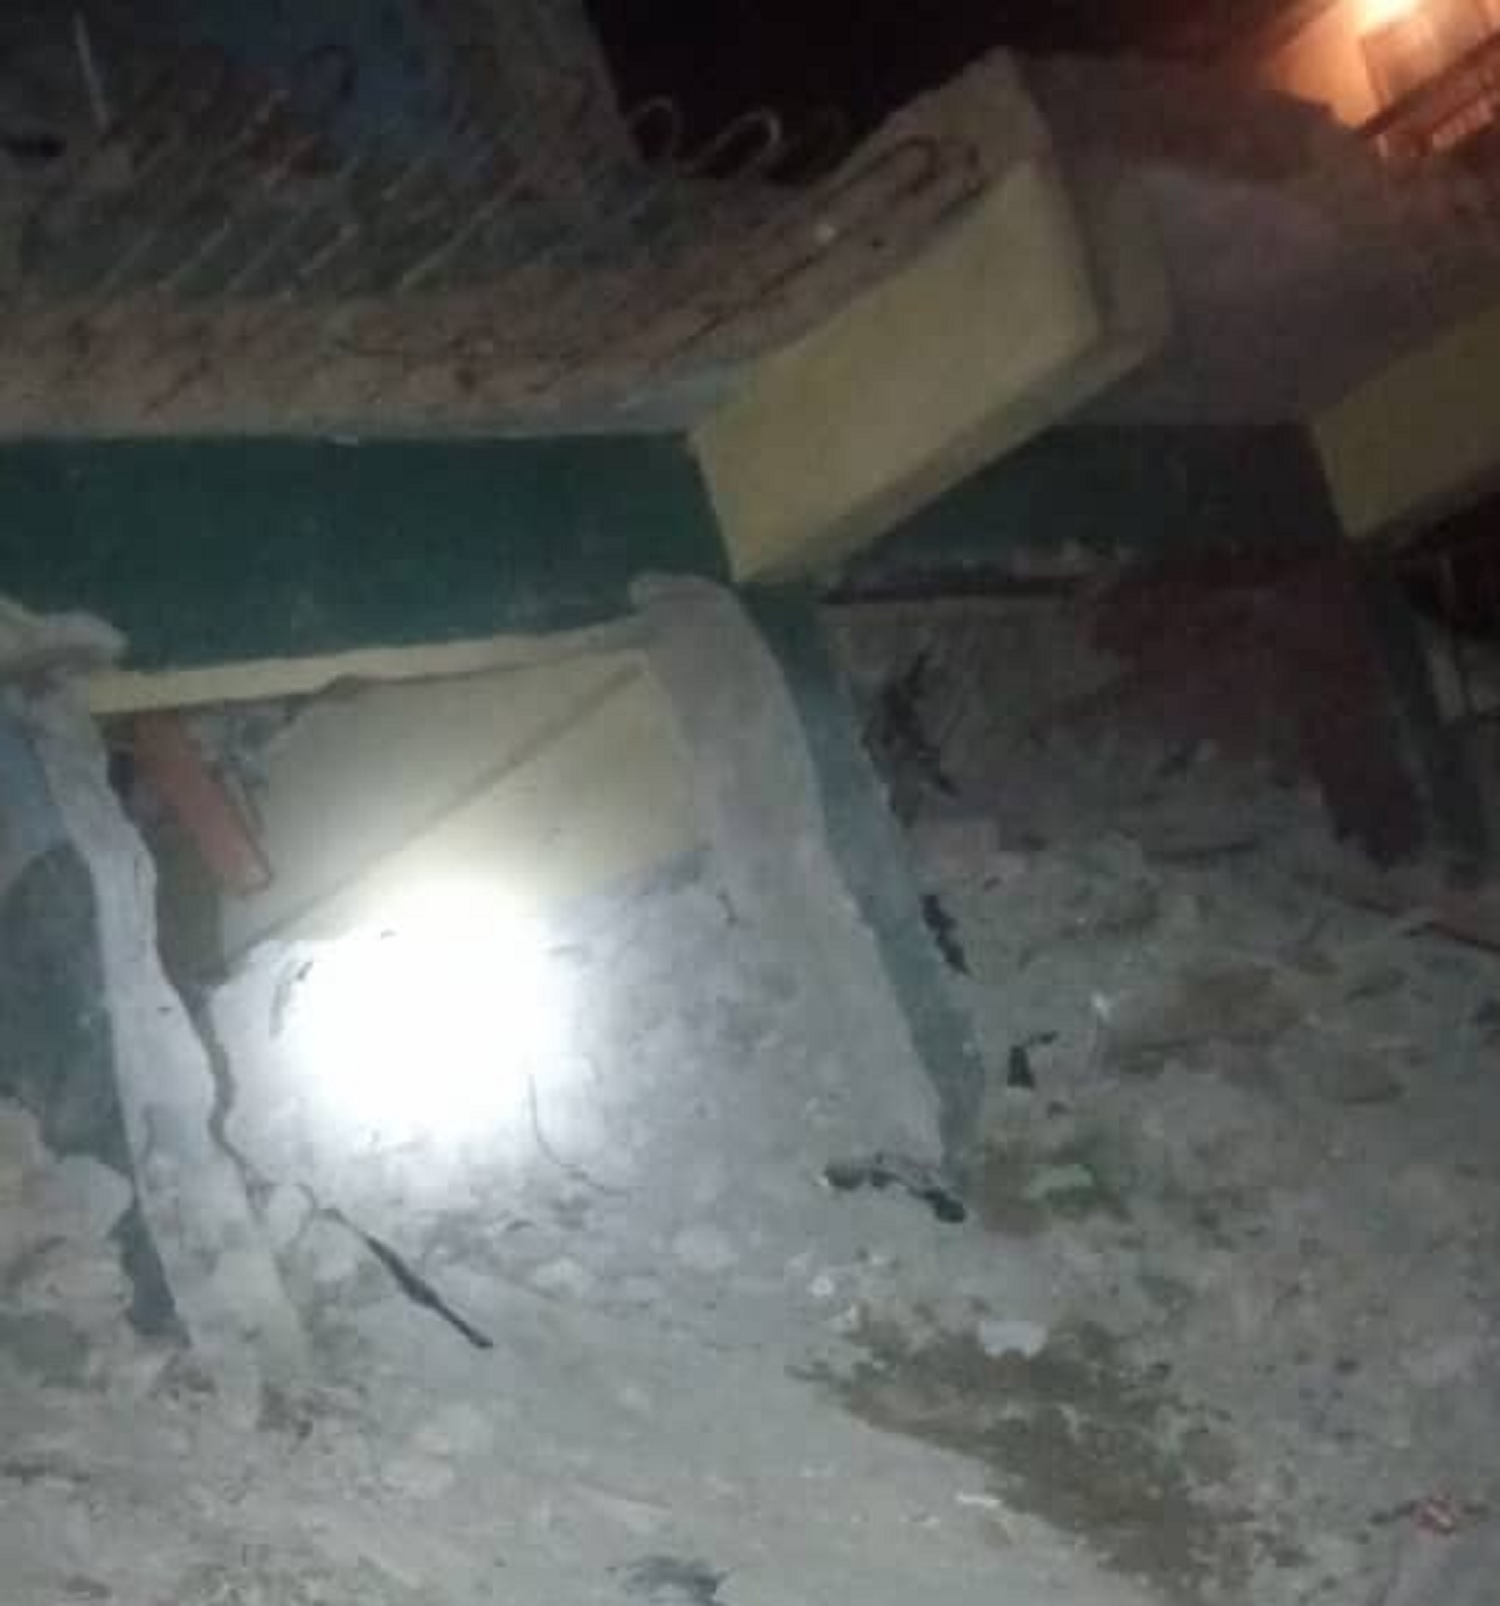 Building collapse: LASG seals off 42 more buildings in Lekki